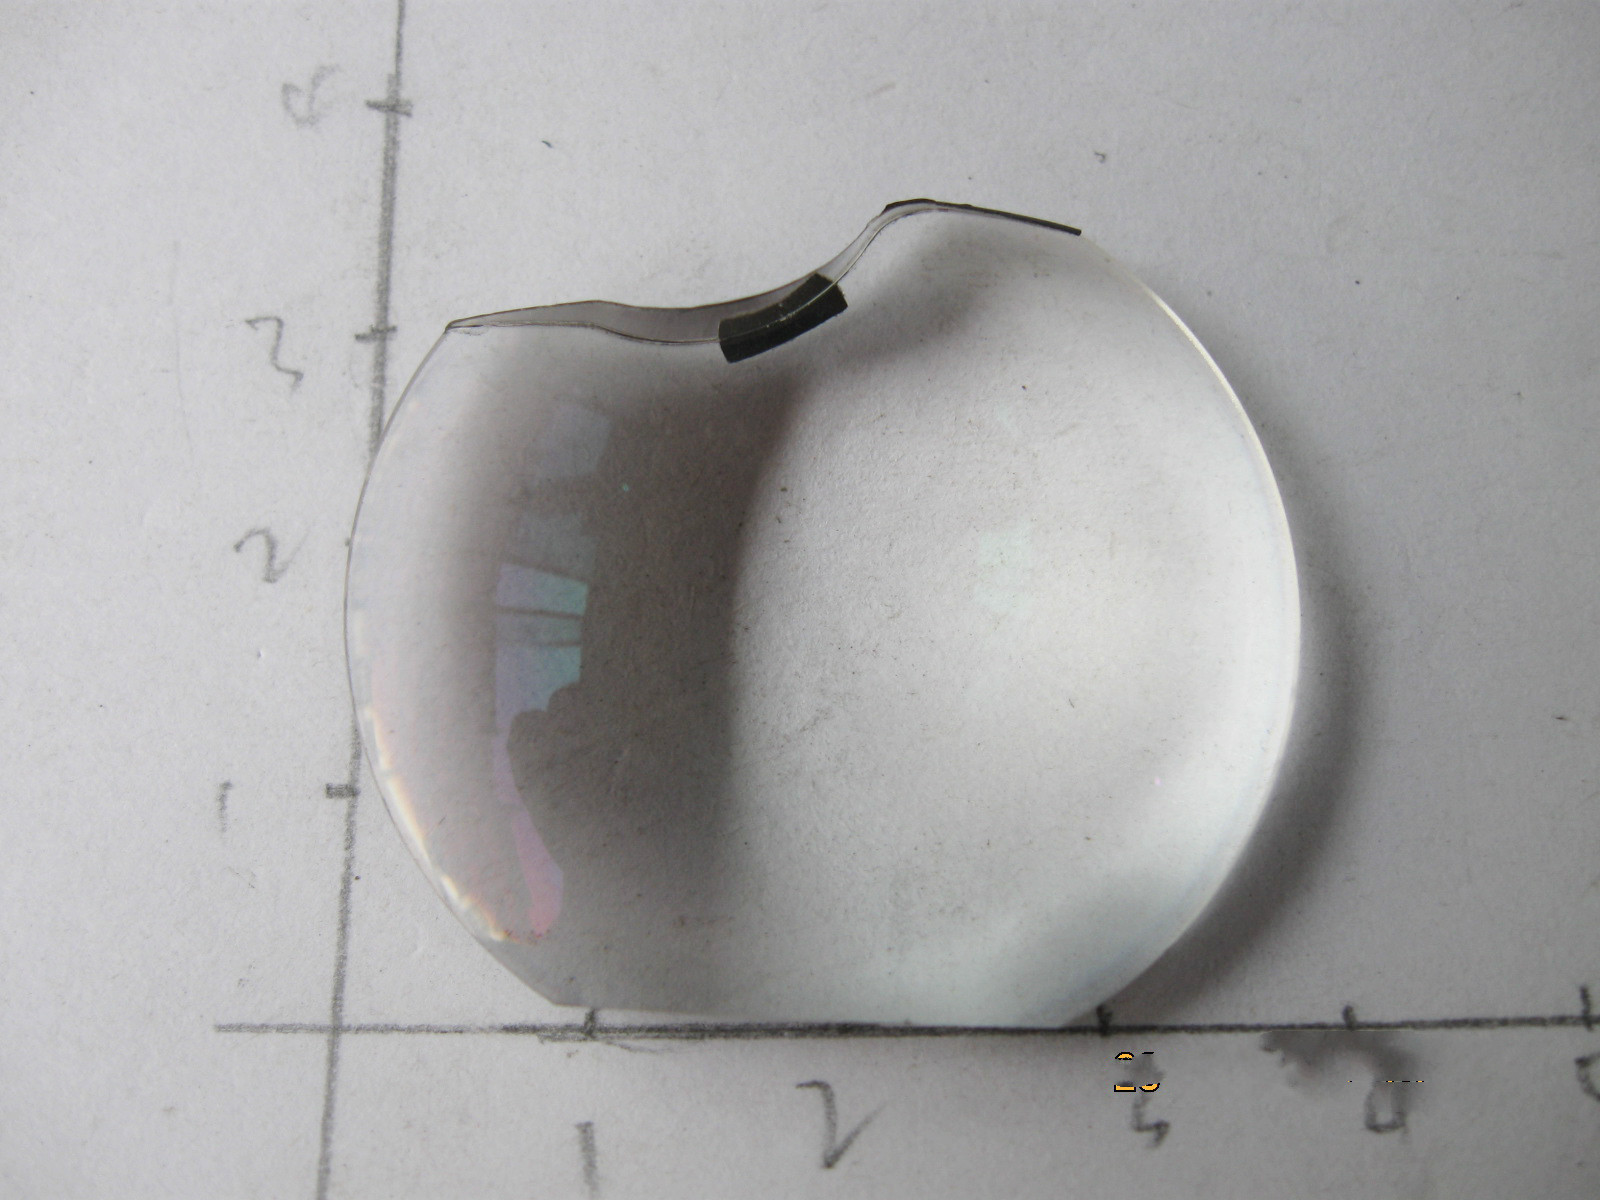 For OPTOMA projector DP7264 convex lens condenser lens glass lens ... for Condenser Lens Projector  76uhy